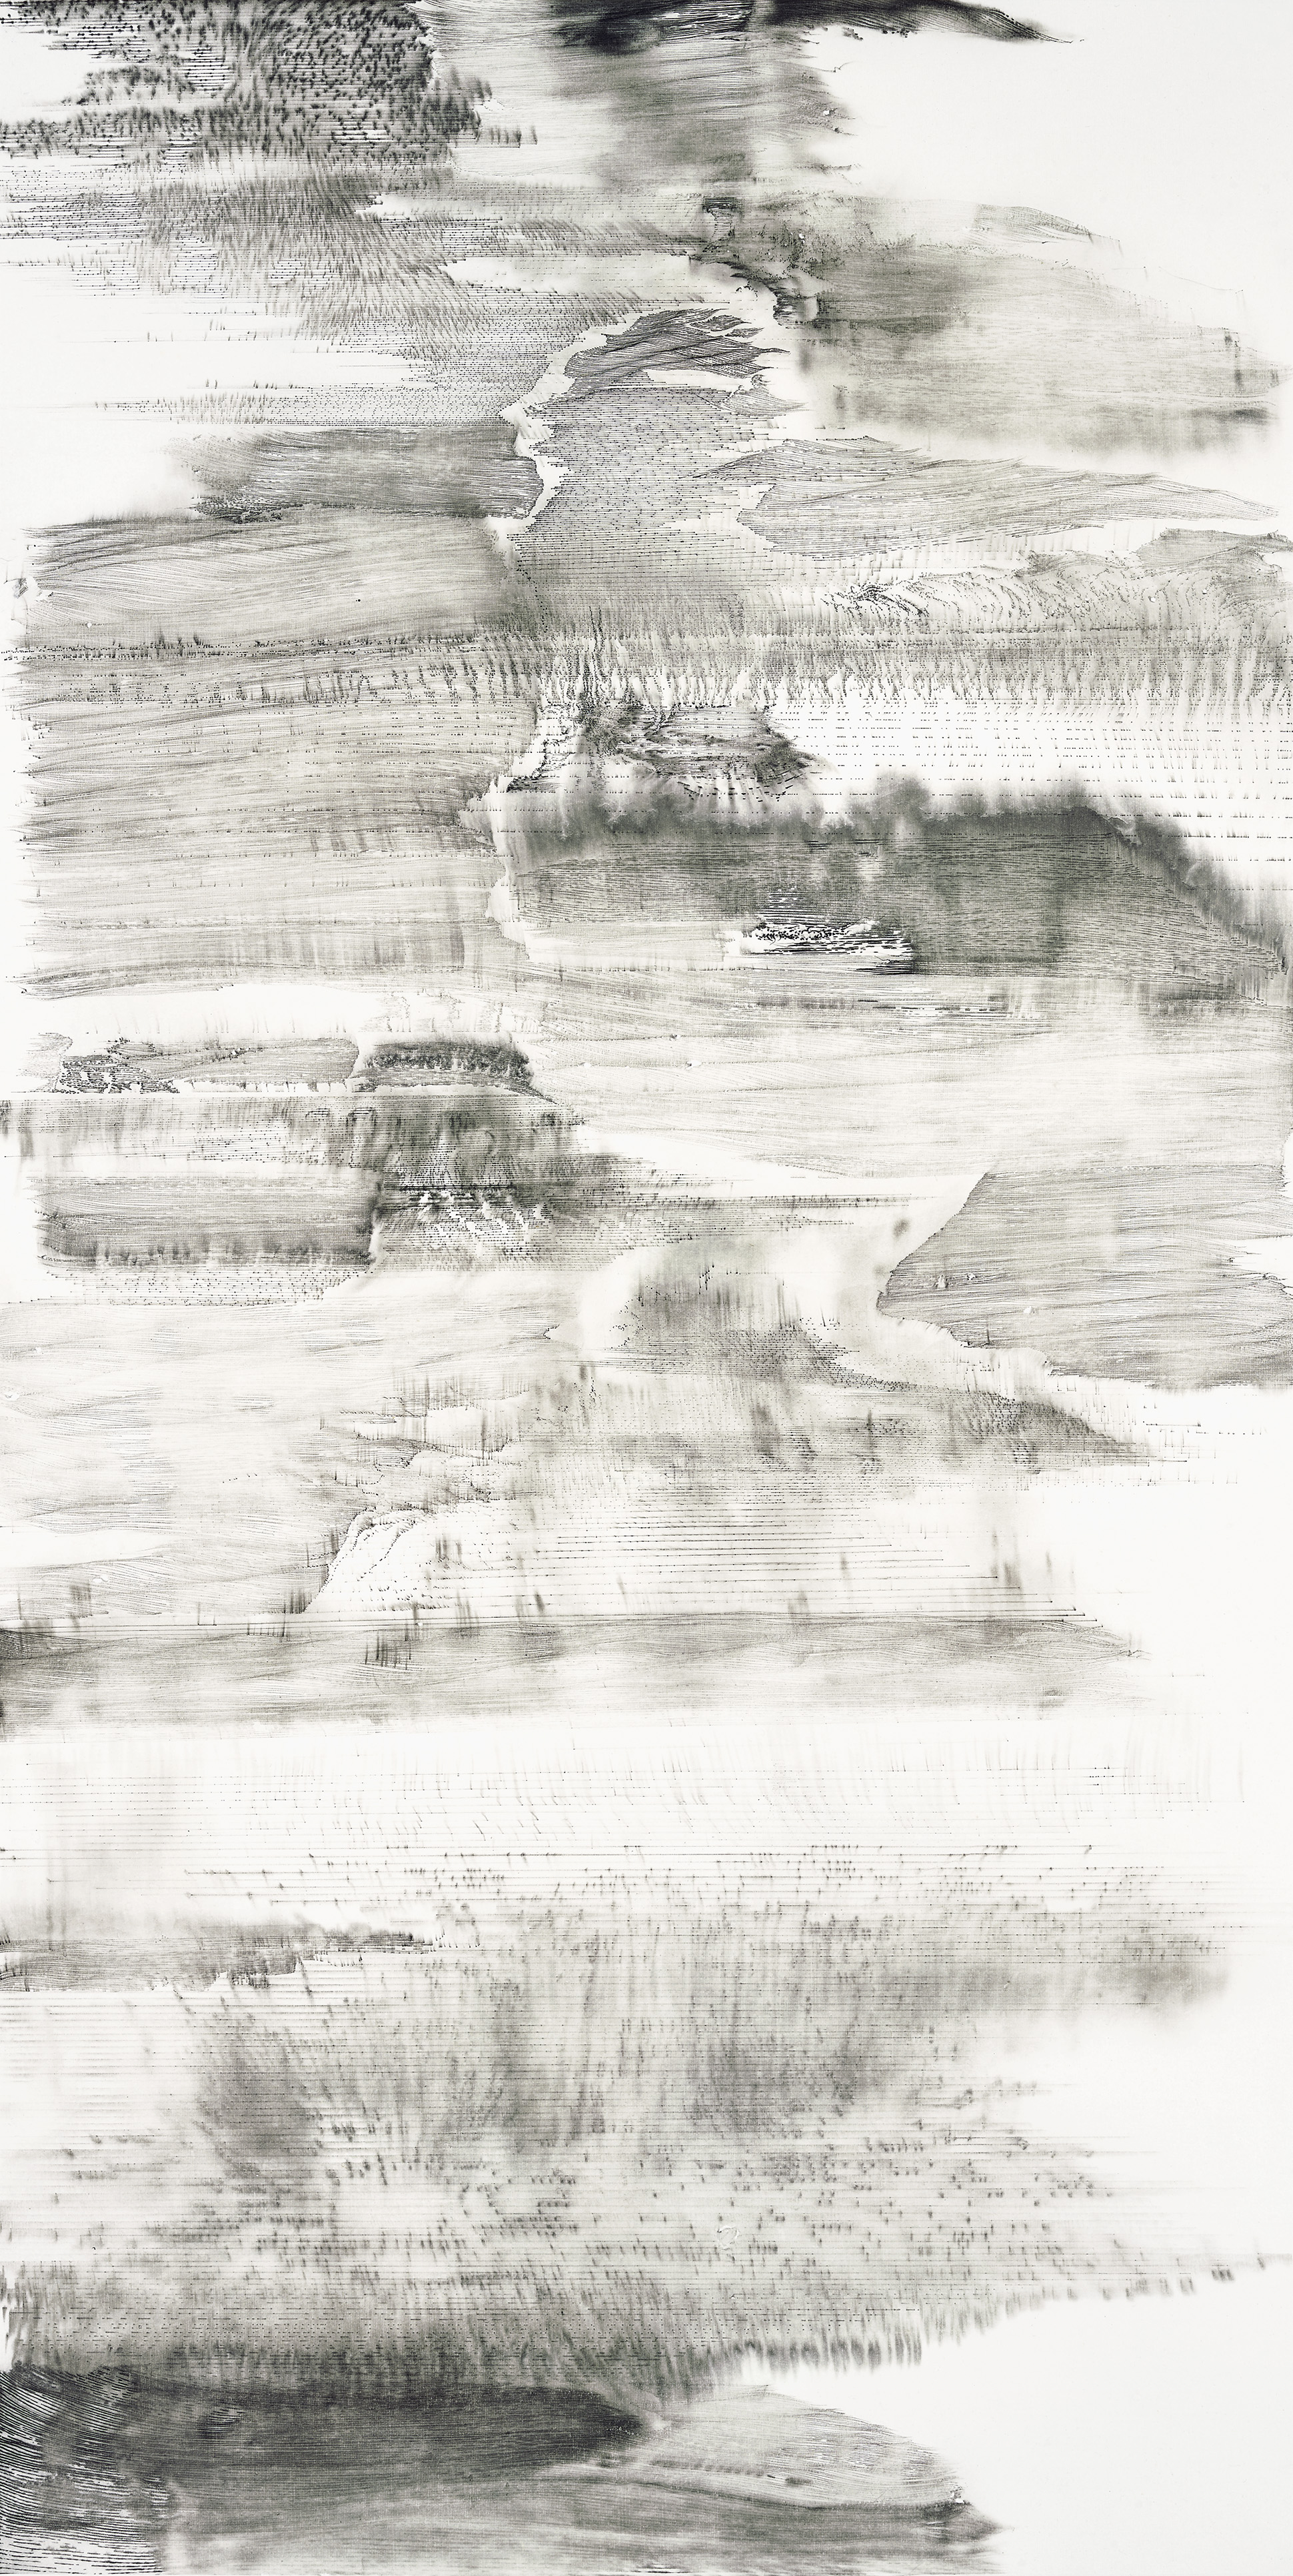 Hung Fai and Wai Pong Yu, Same Line Twice 4, 70 cm (width) x 138 cm (height), pigmented ink on paper, 2016